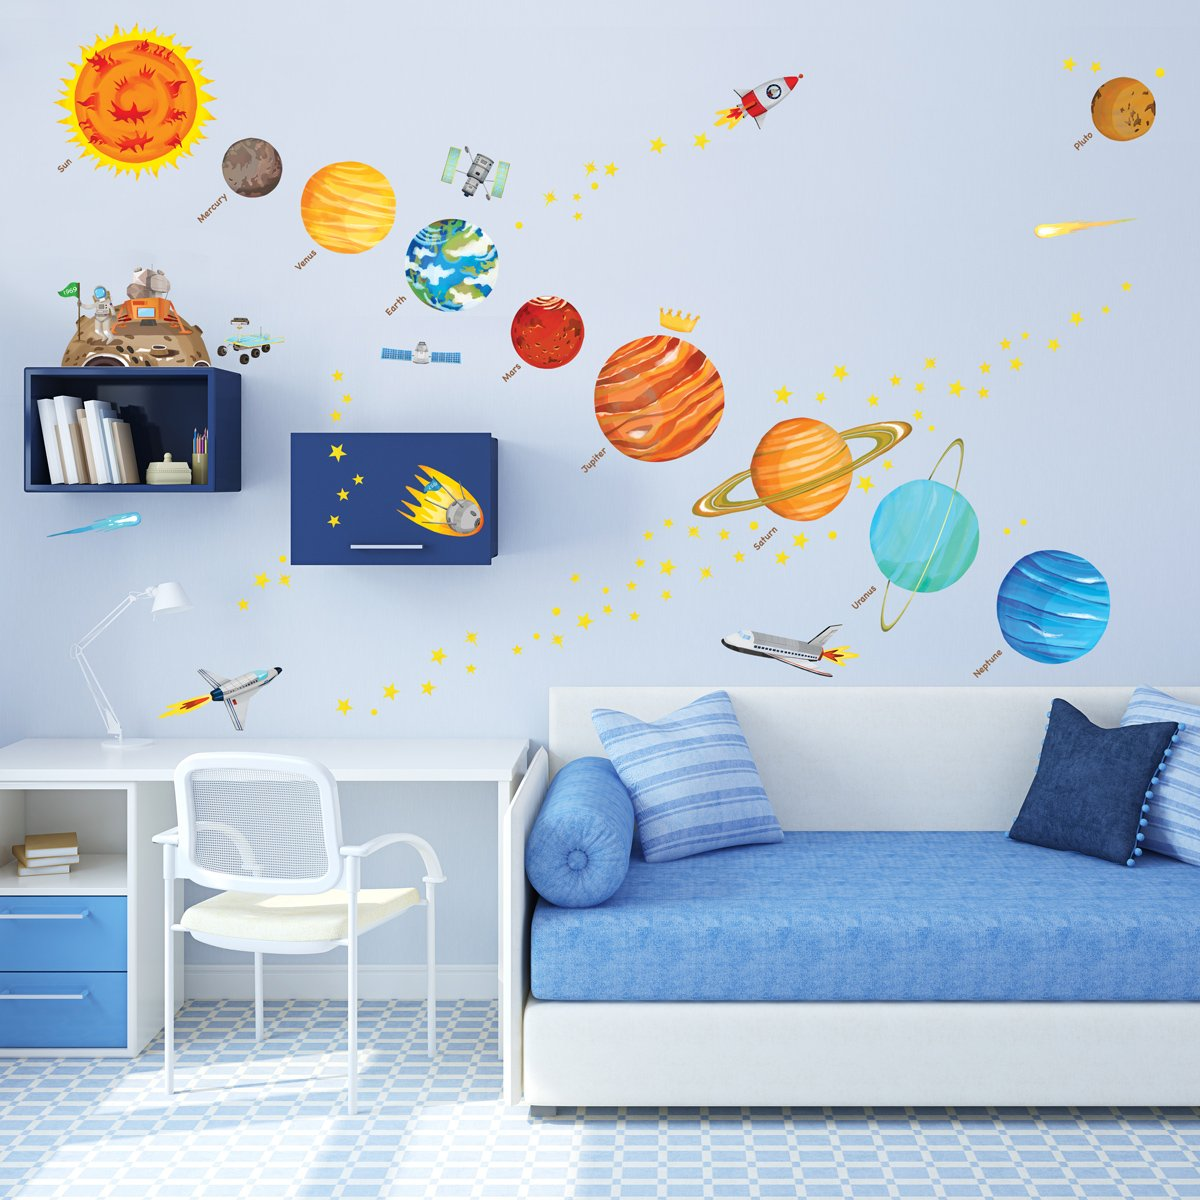 Lovely Amazon.com: Decowall DA 1501 The Solar System Kids Wall Stickers Wall Decals  Peel And Stick Removable Wall Stickers For Kids Nursery Bedroom Living Room  ...